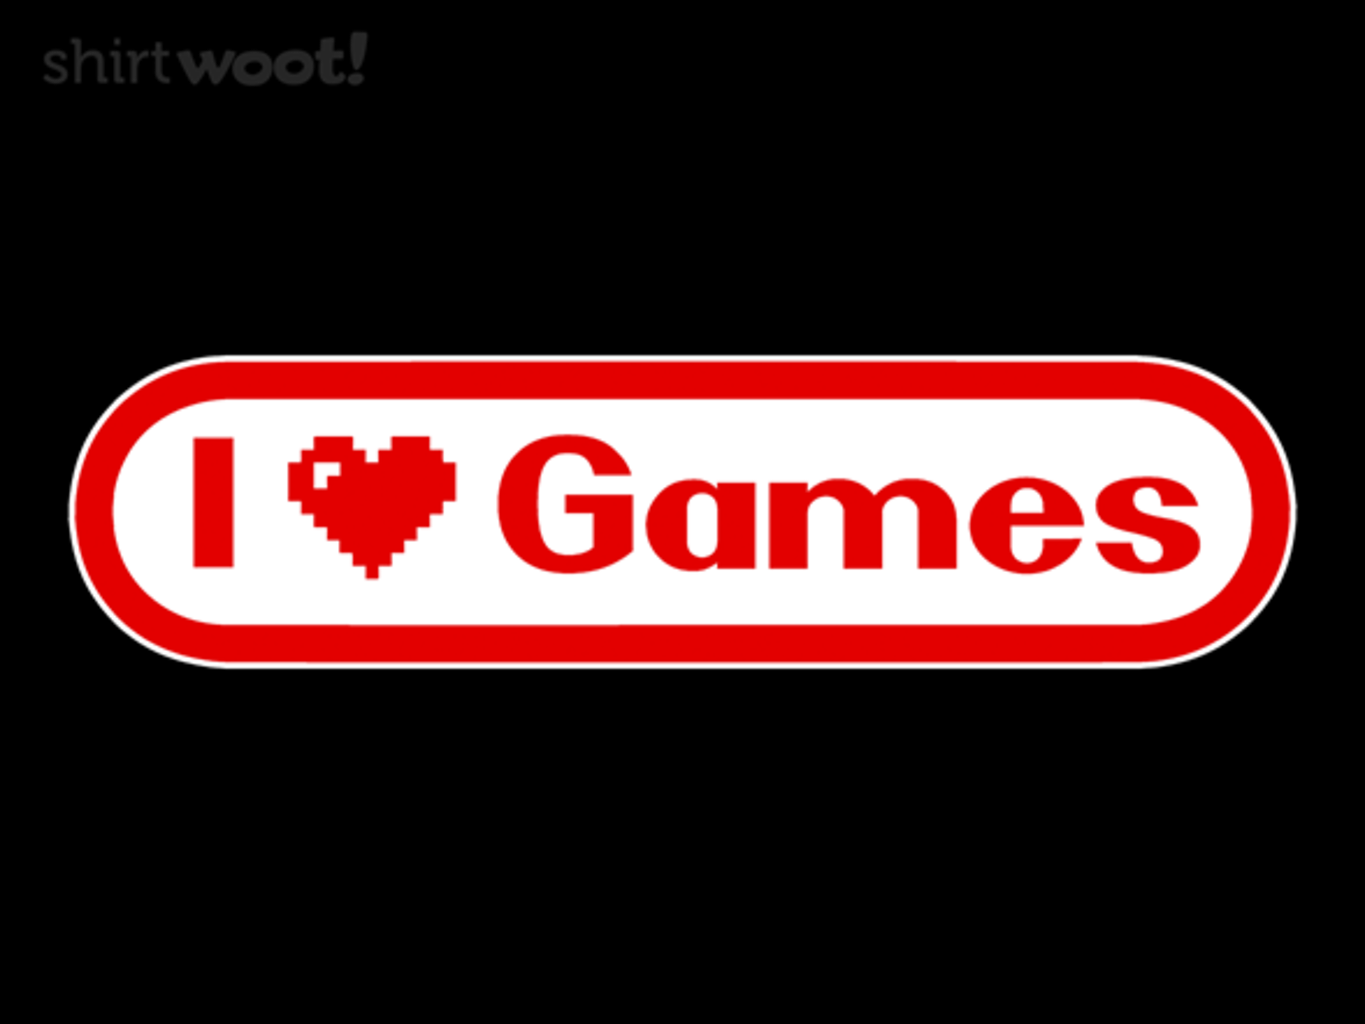 Woot!: I Heart Games